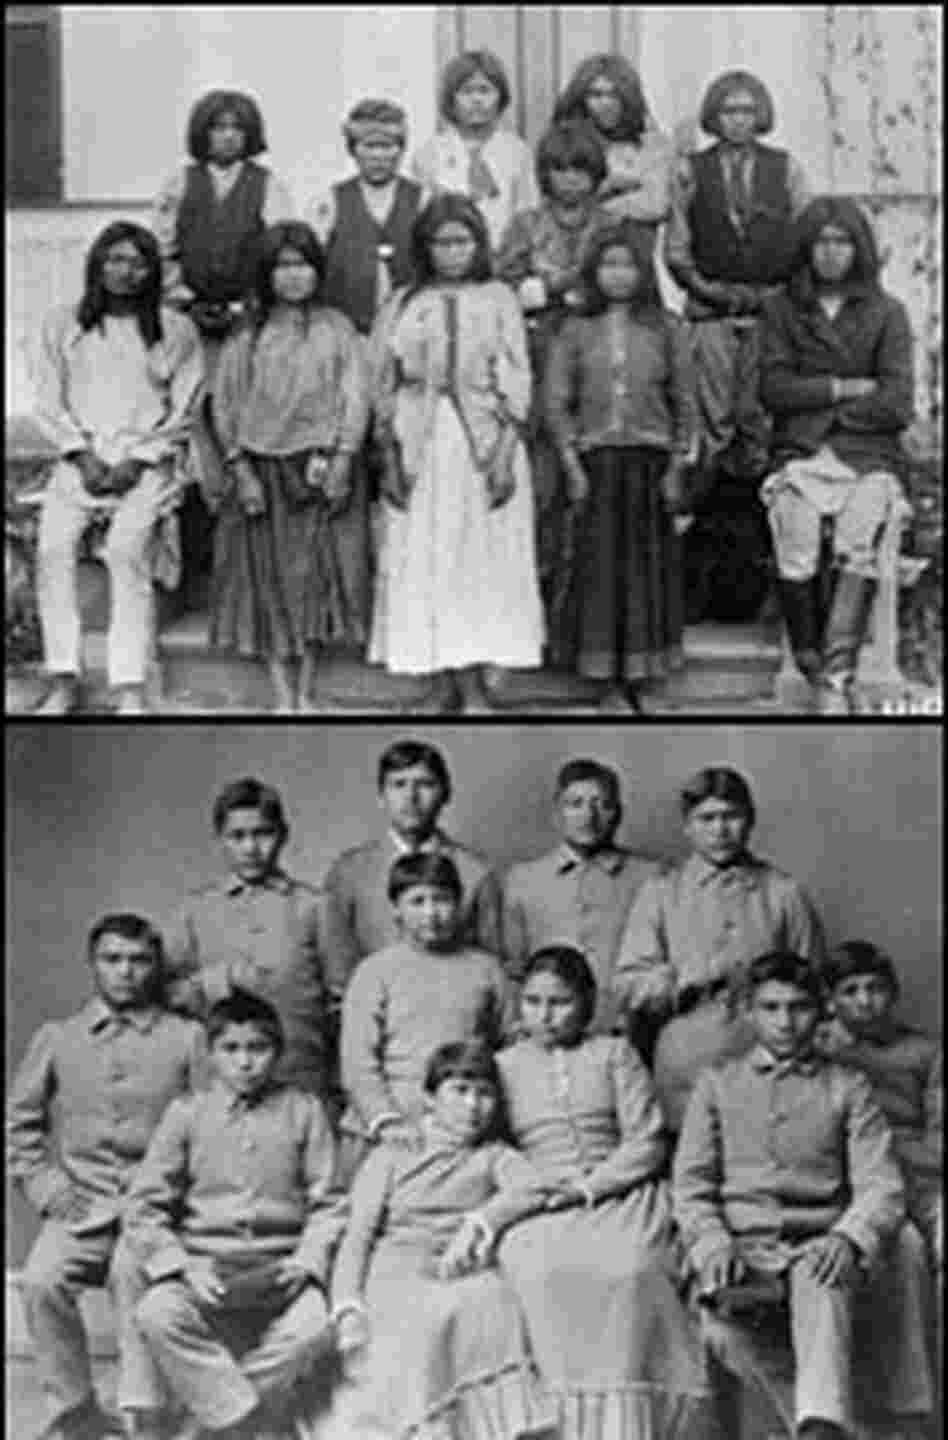 A group of Chiricahua Apache students at Carlisle Indian school.